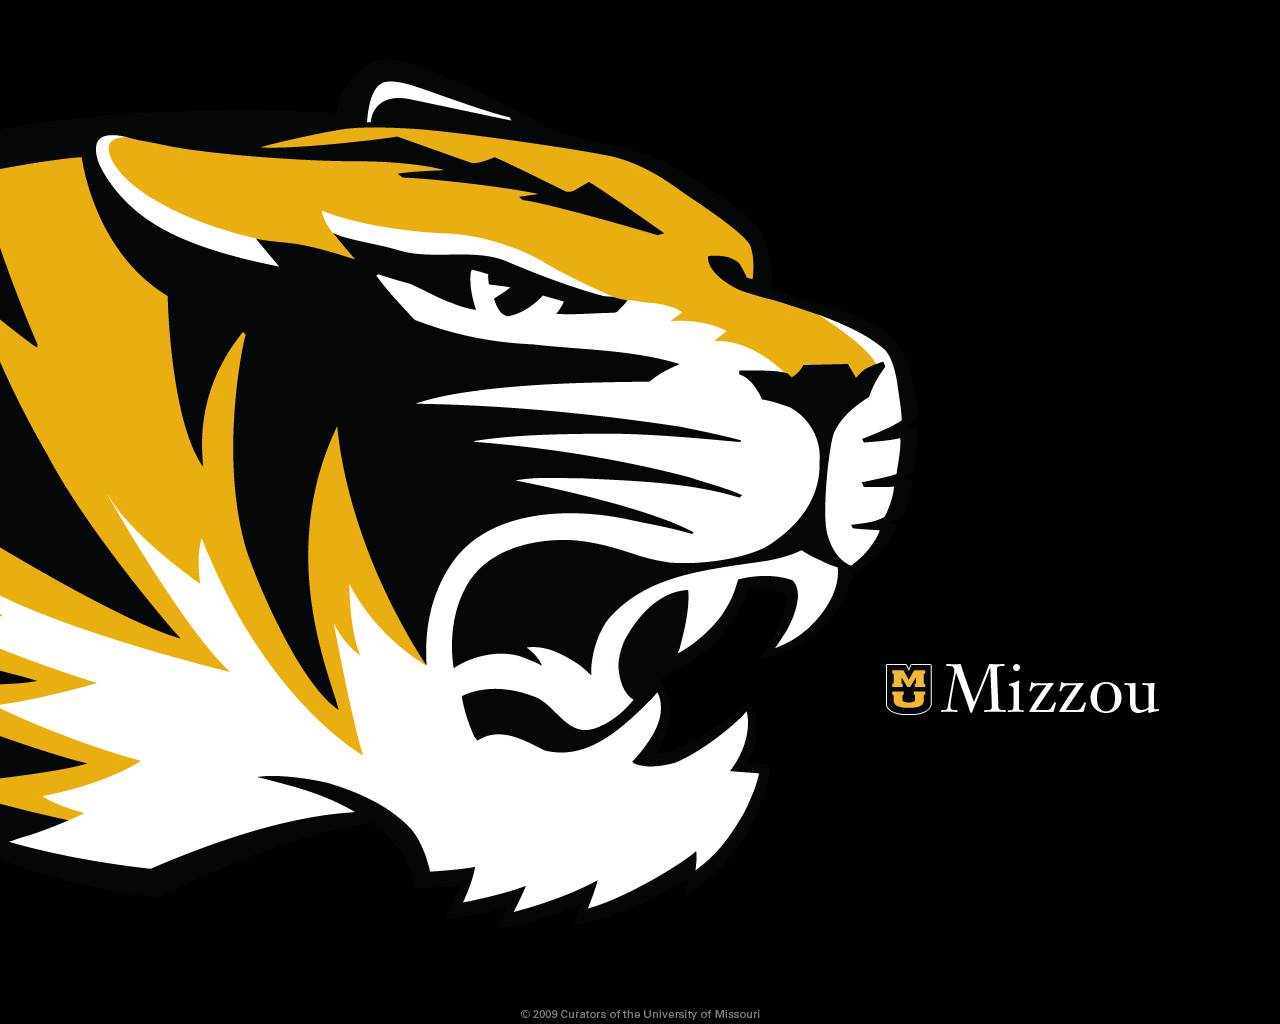 Mizzou Spirit Mizzou University of Missouri 1280x1024